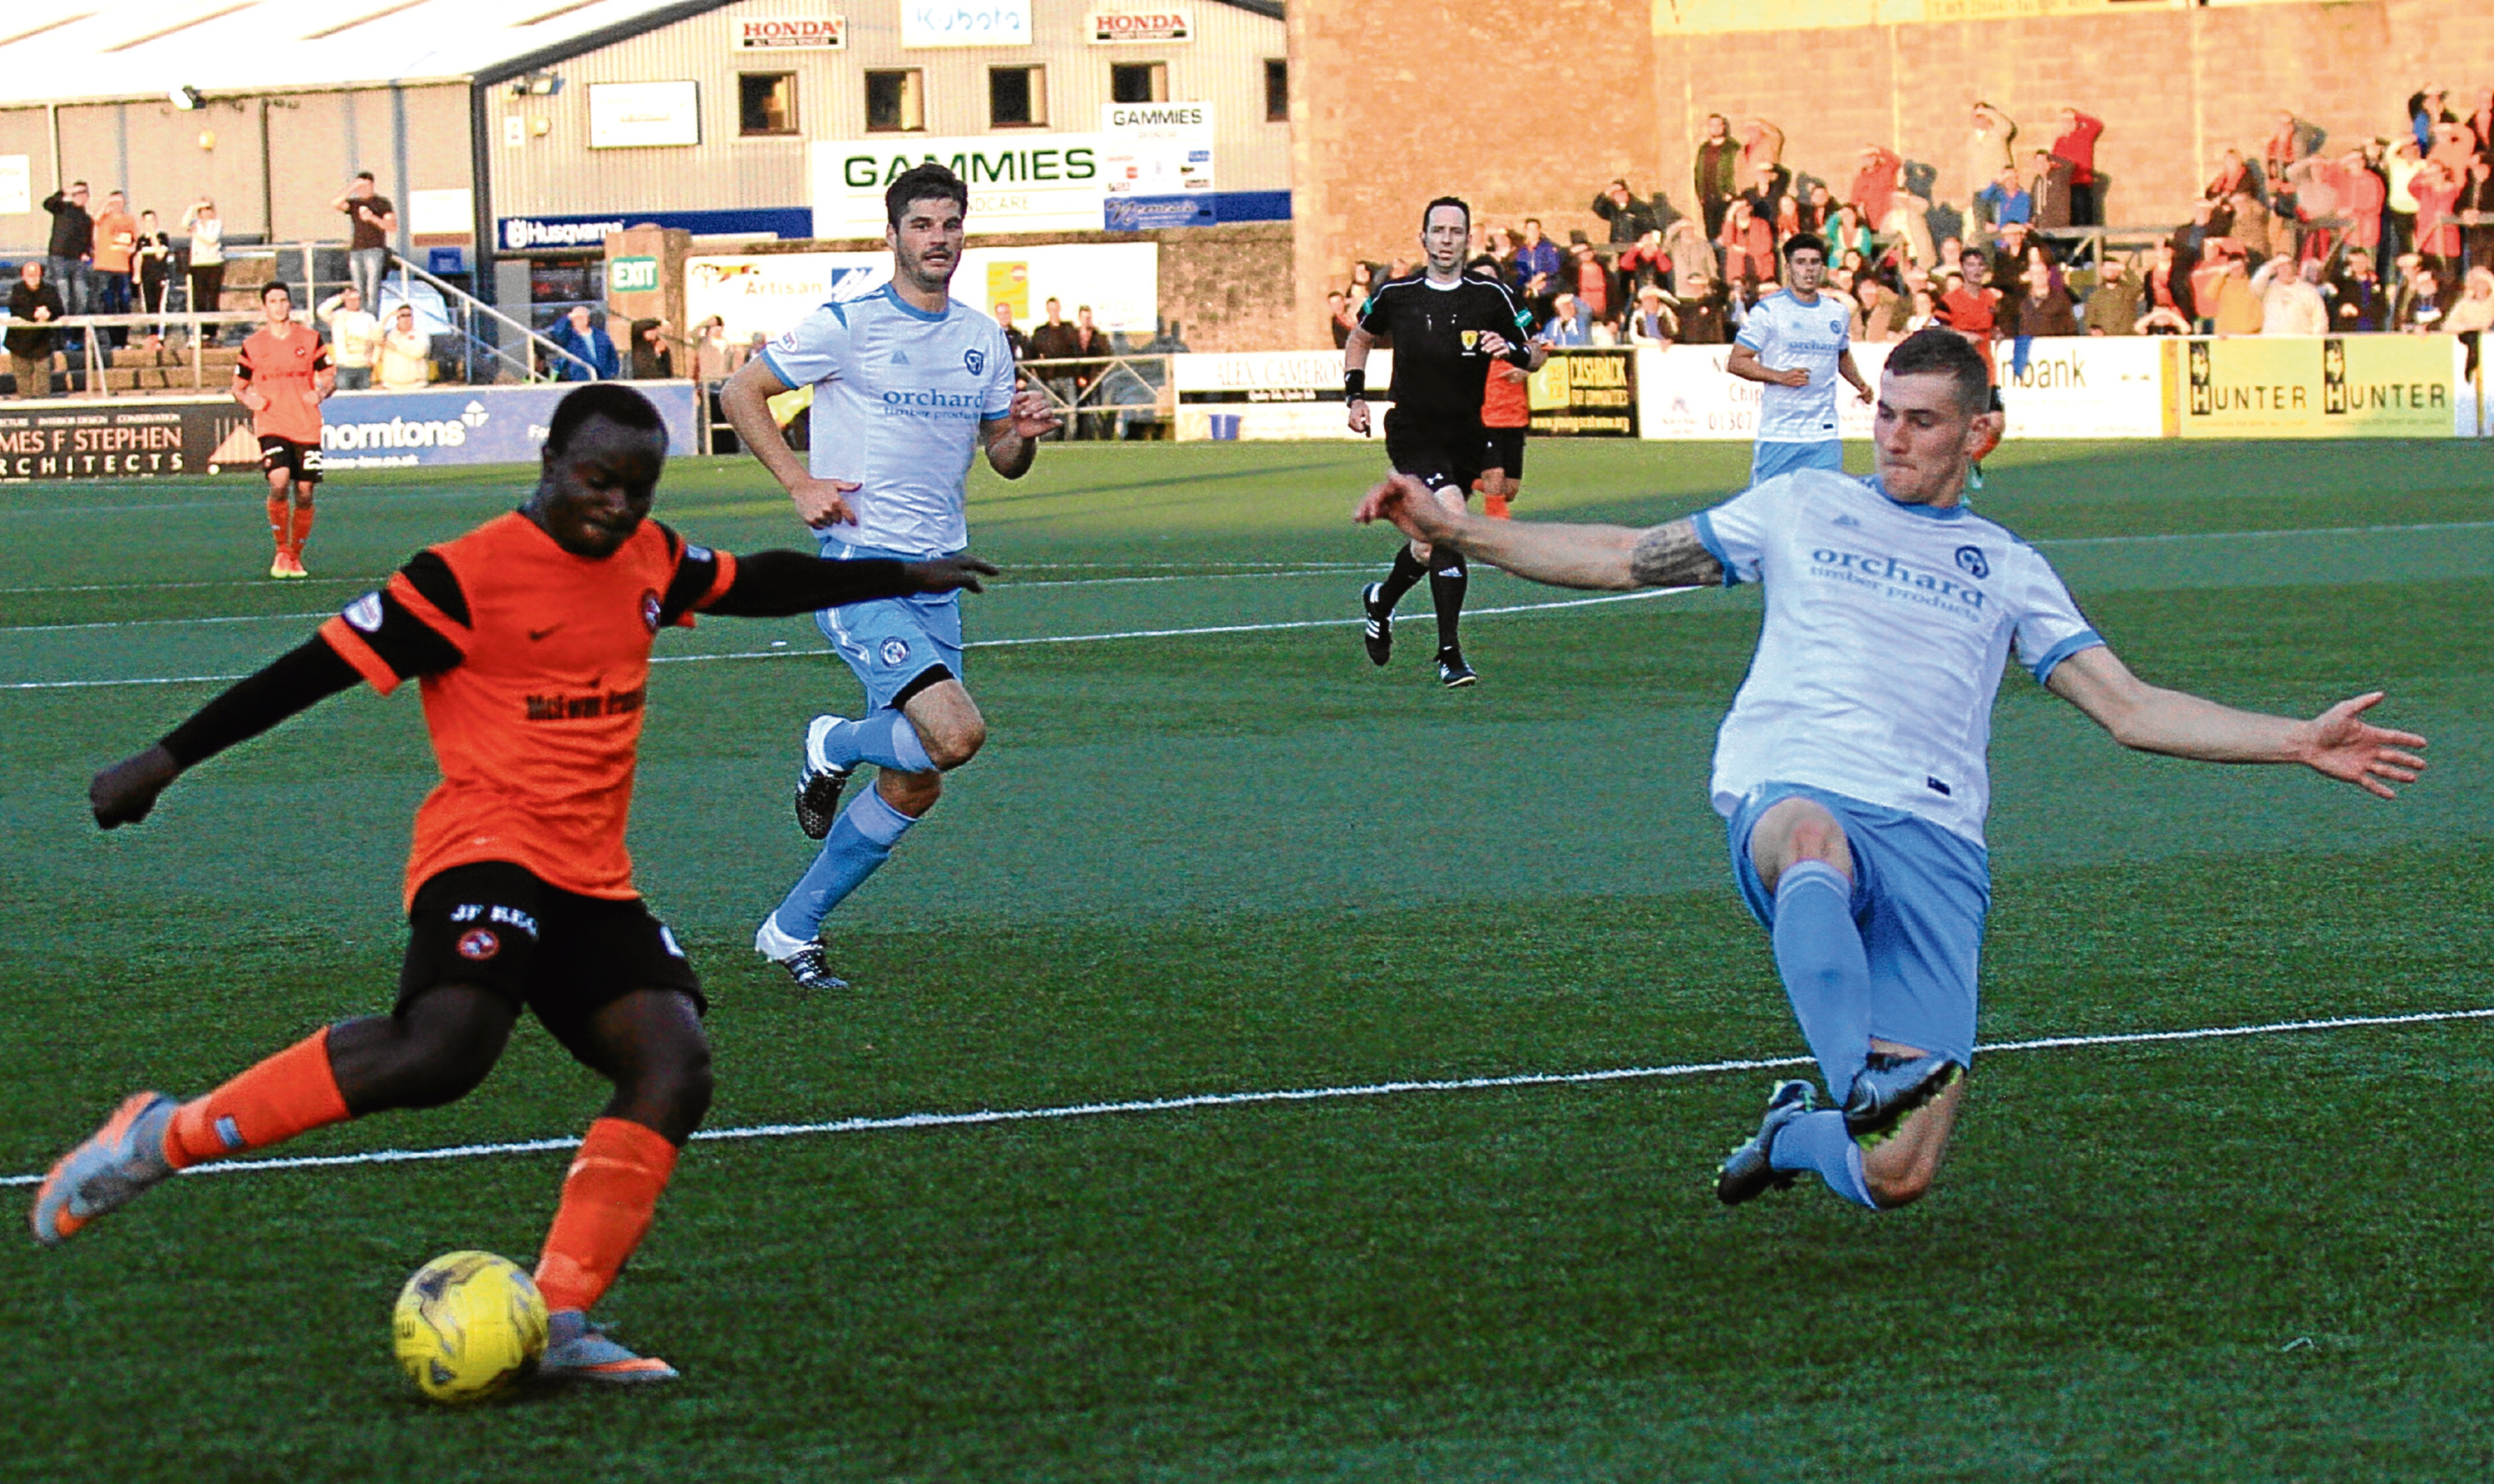 Dundee United's youthful side impressed manager Ray McKinnon in the friendly draw at Forfar — here Justin Johnson nets the equaliser.